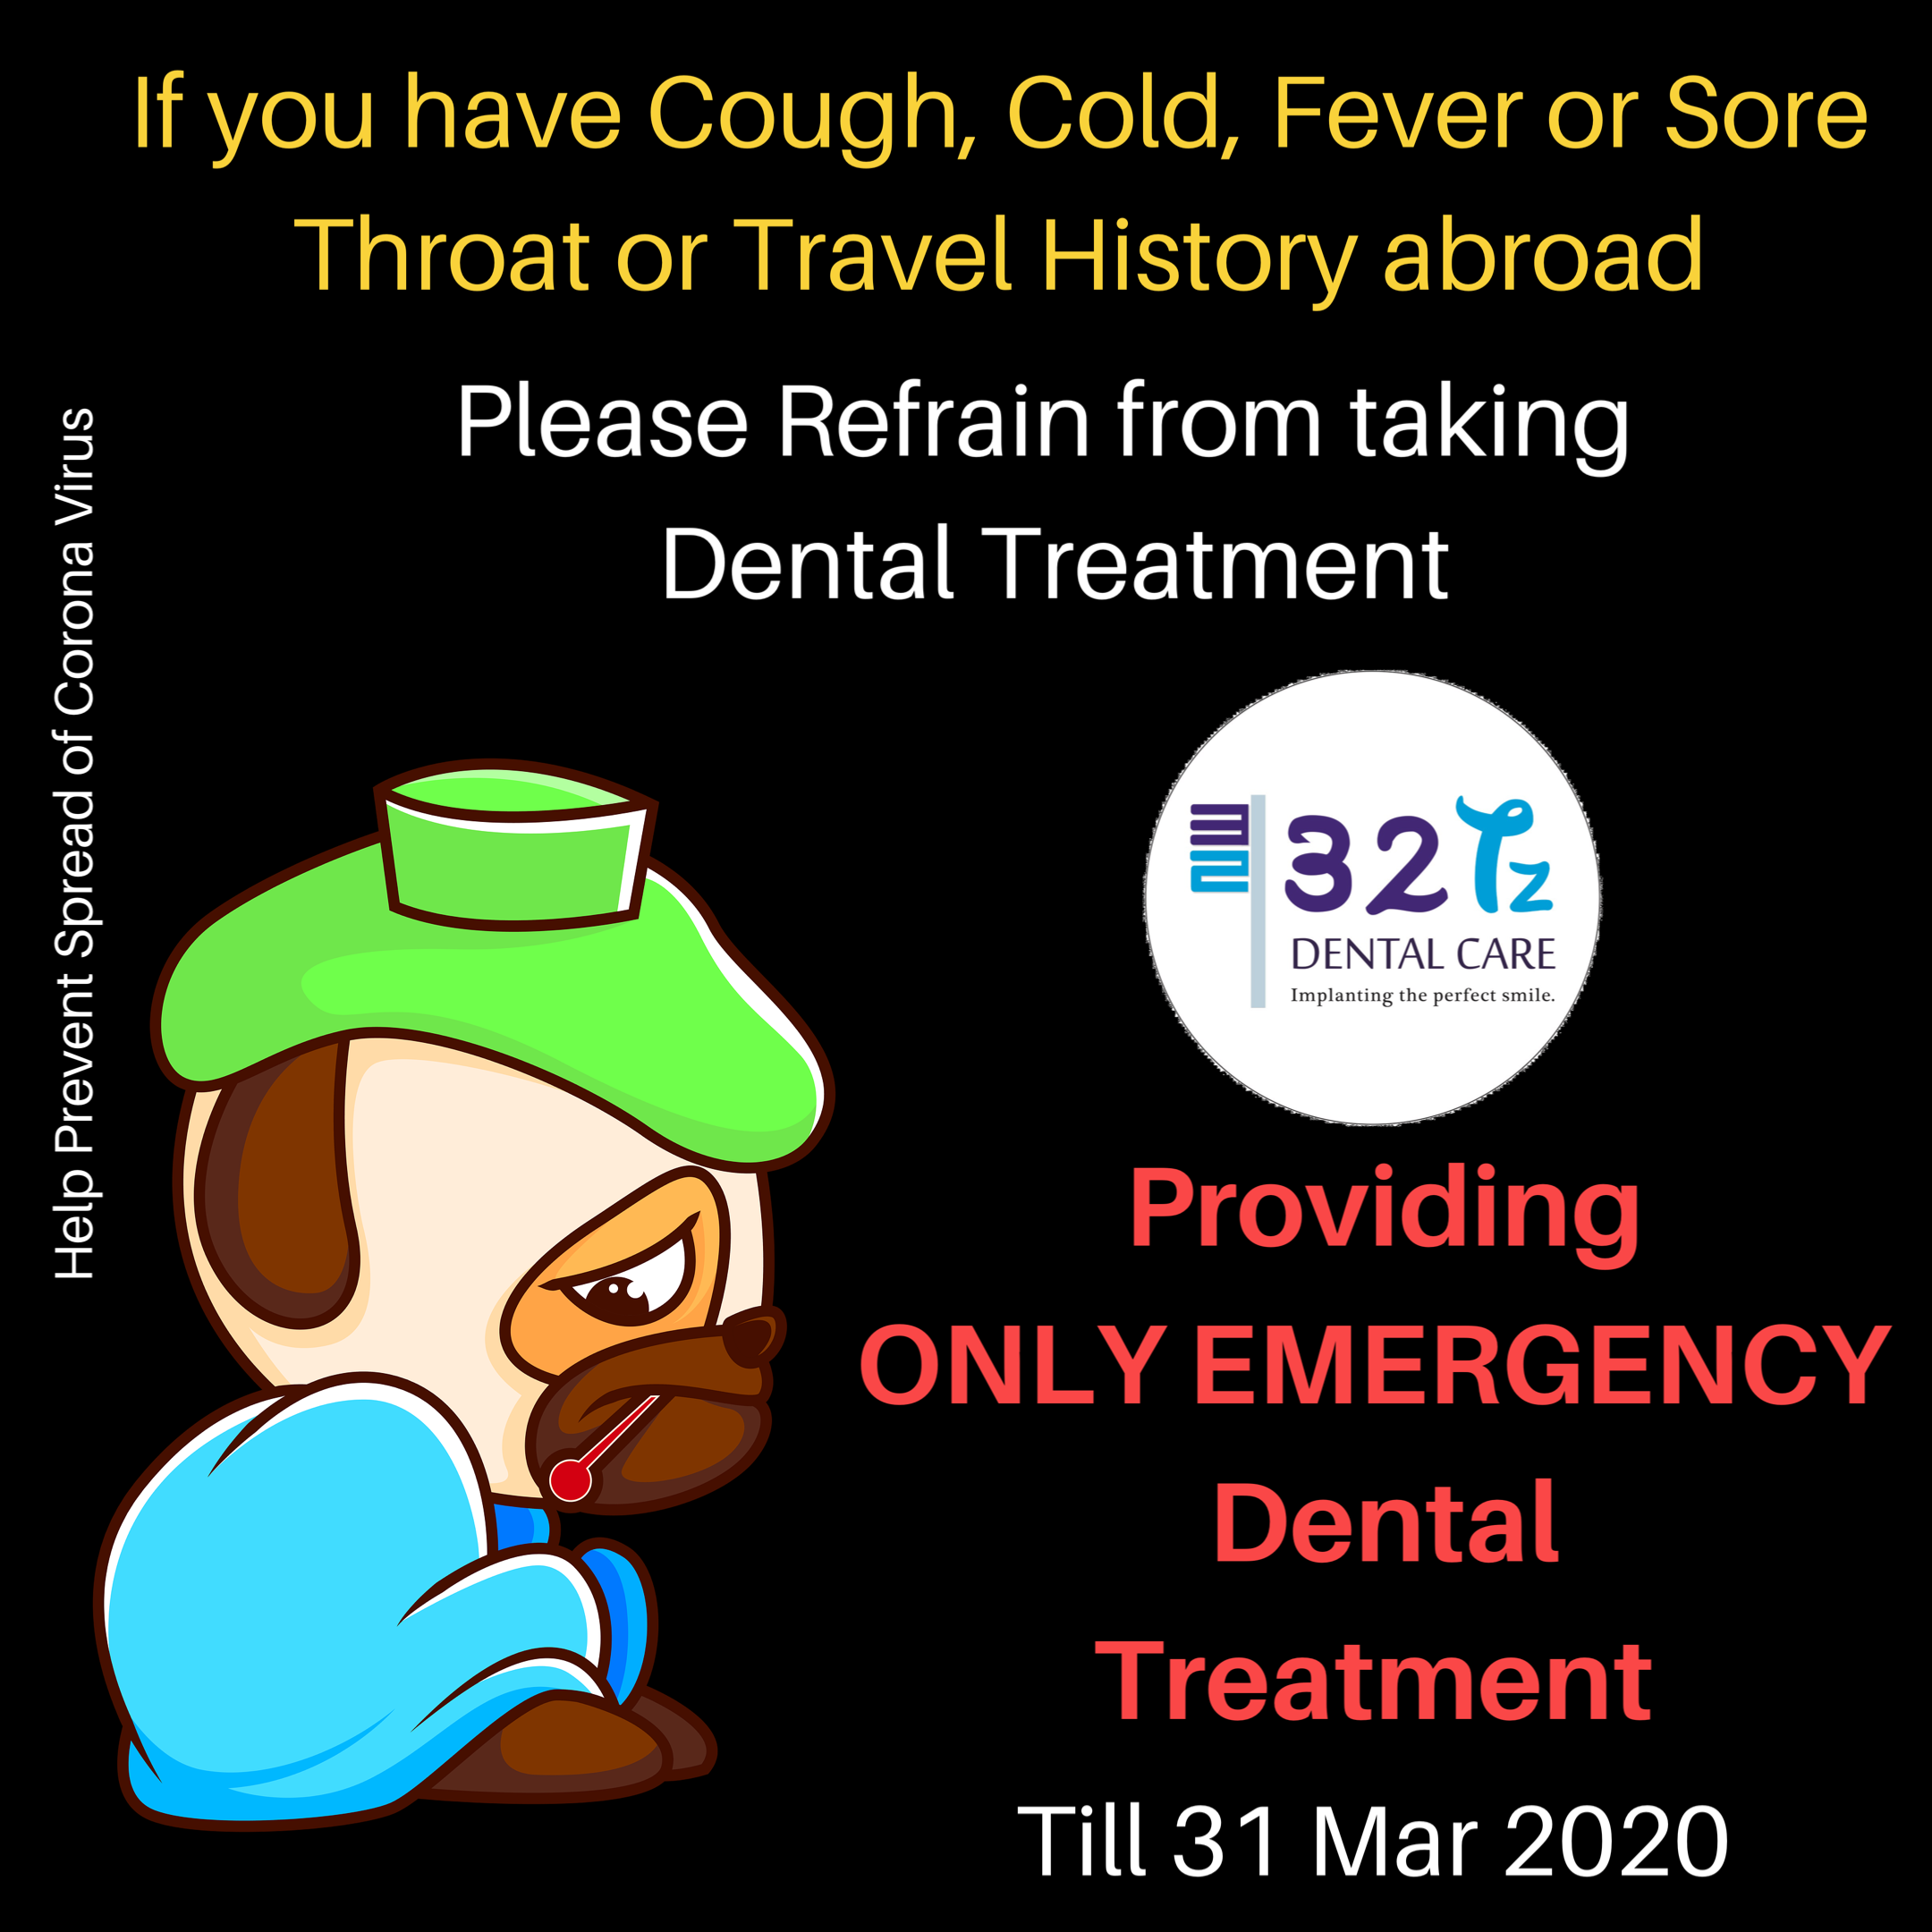 Providing ONLY EMERGENCY DENTAL TREATMENT